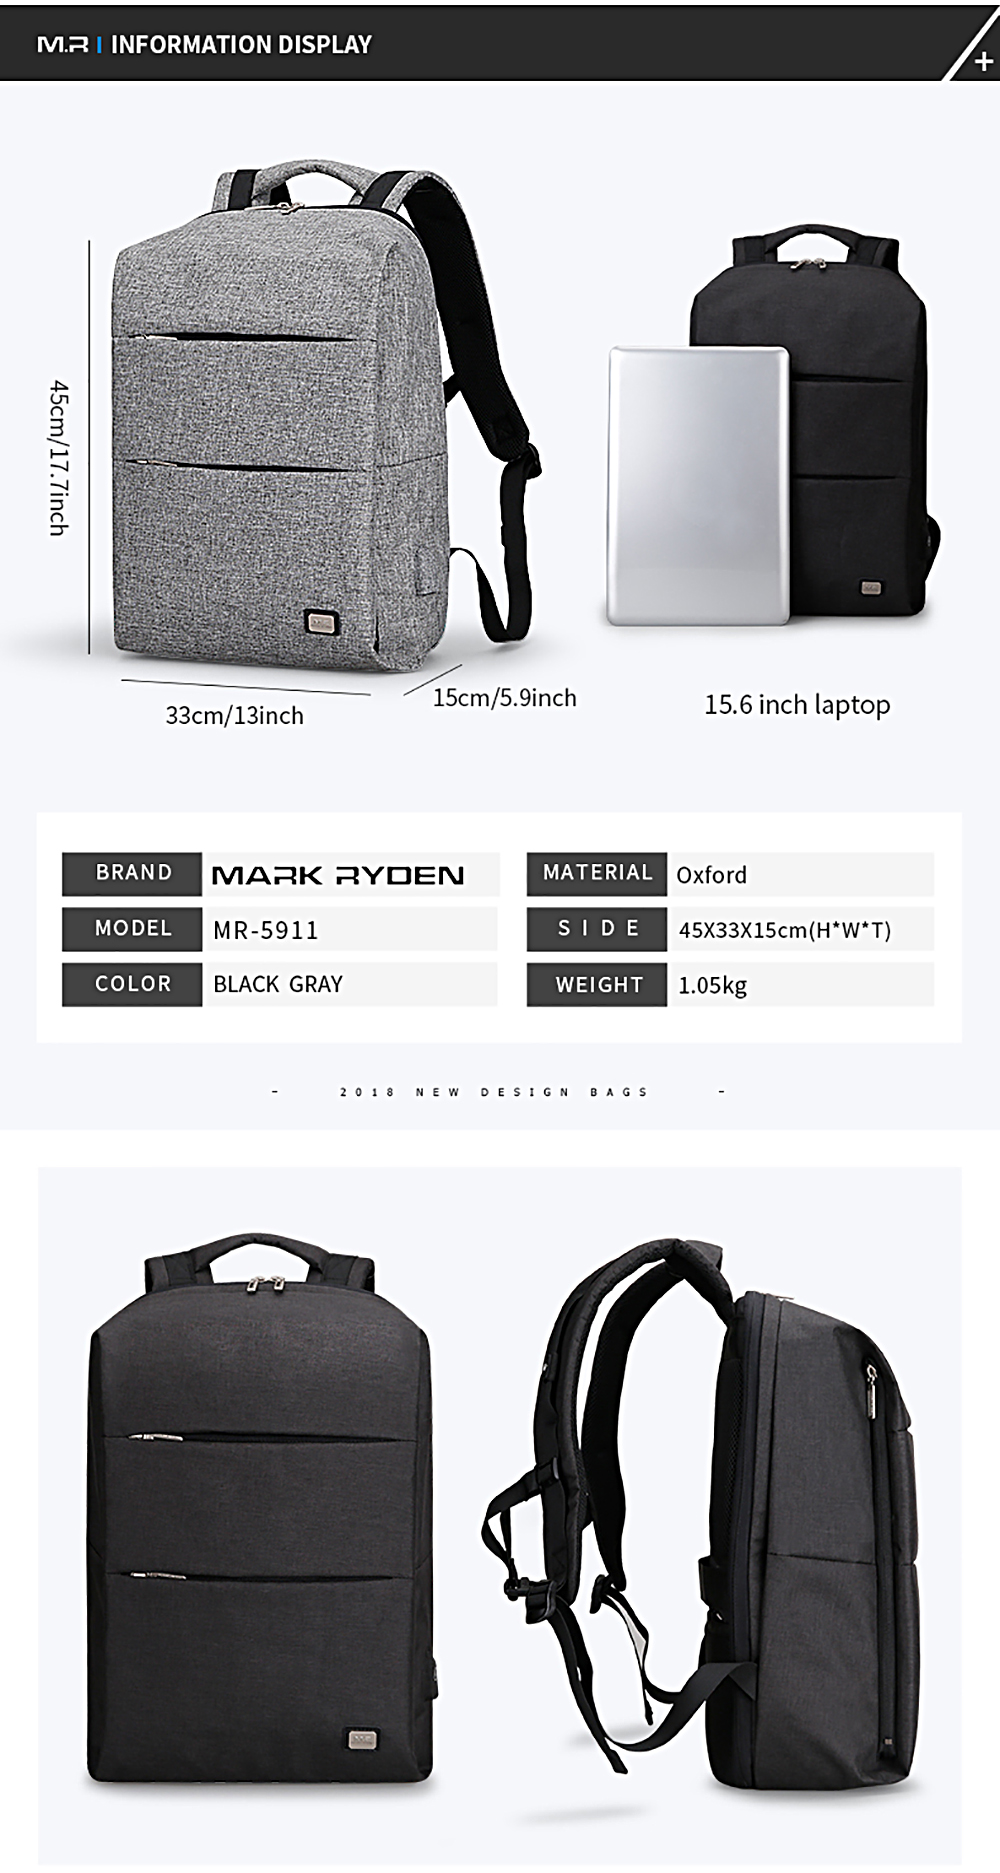 2018 Travel Bags Markrydeb 5911 2018 New Men S Backpack Stylish Leisure Travel Bag